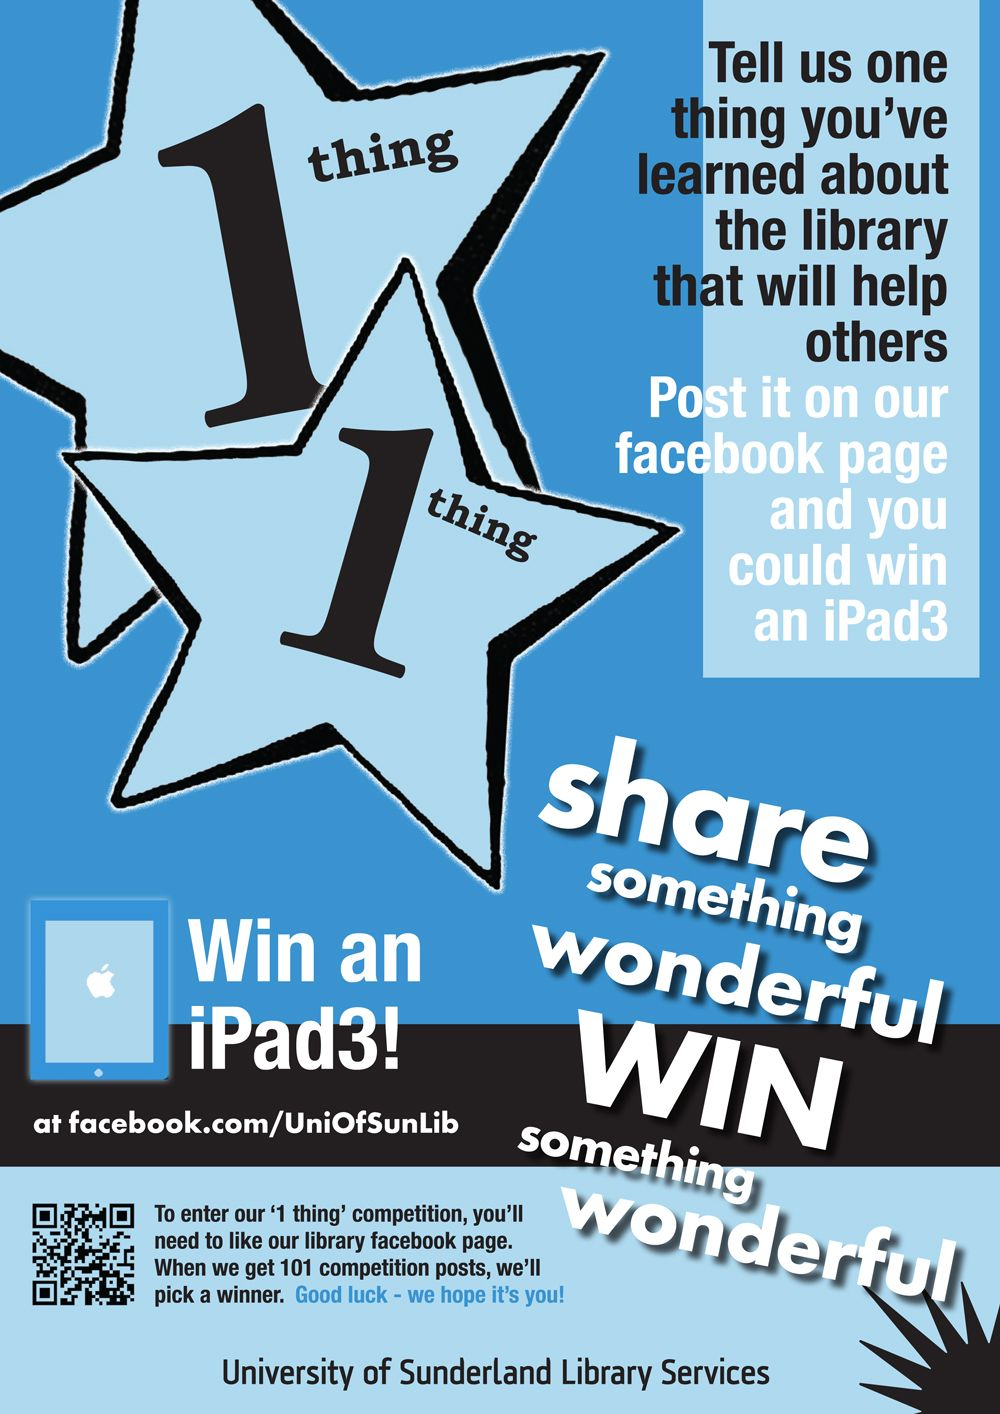 Here's a picture of the A1 posters we used within the library buildings to advertise the 'share one wonderful thing' competition.